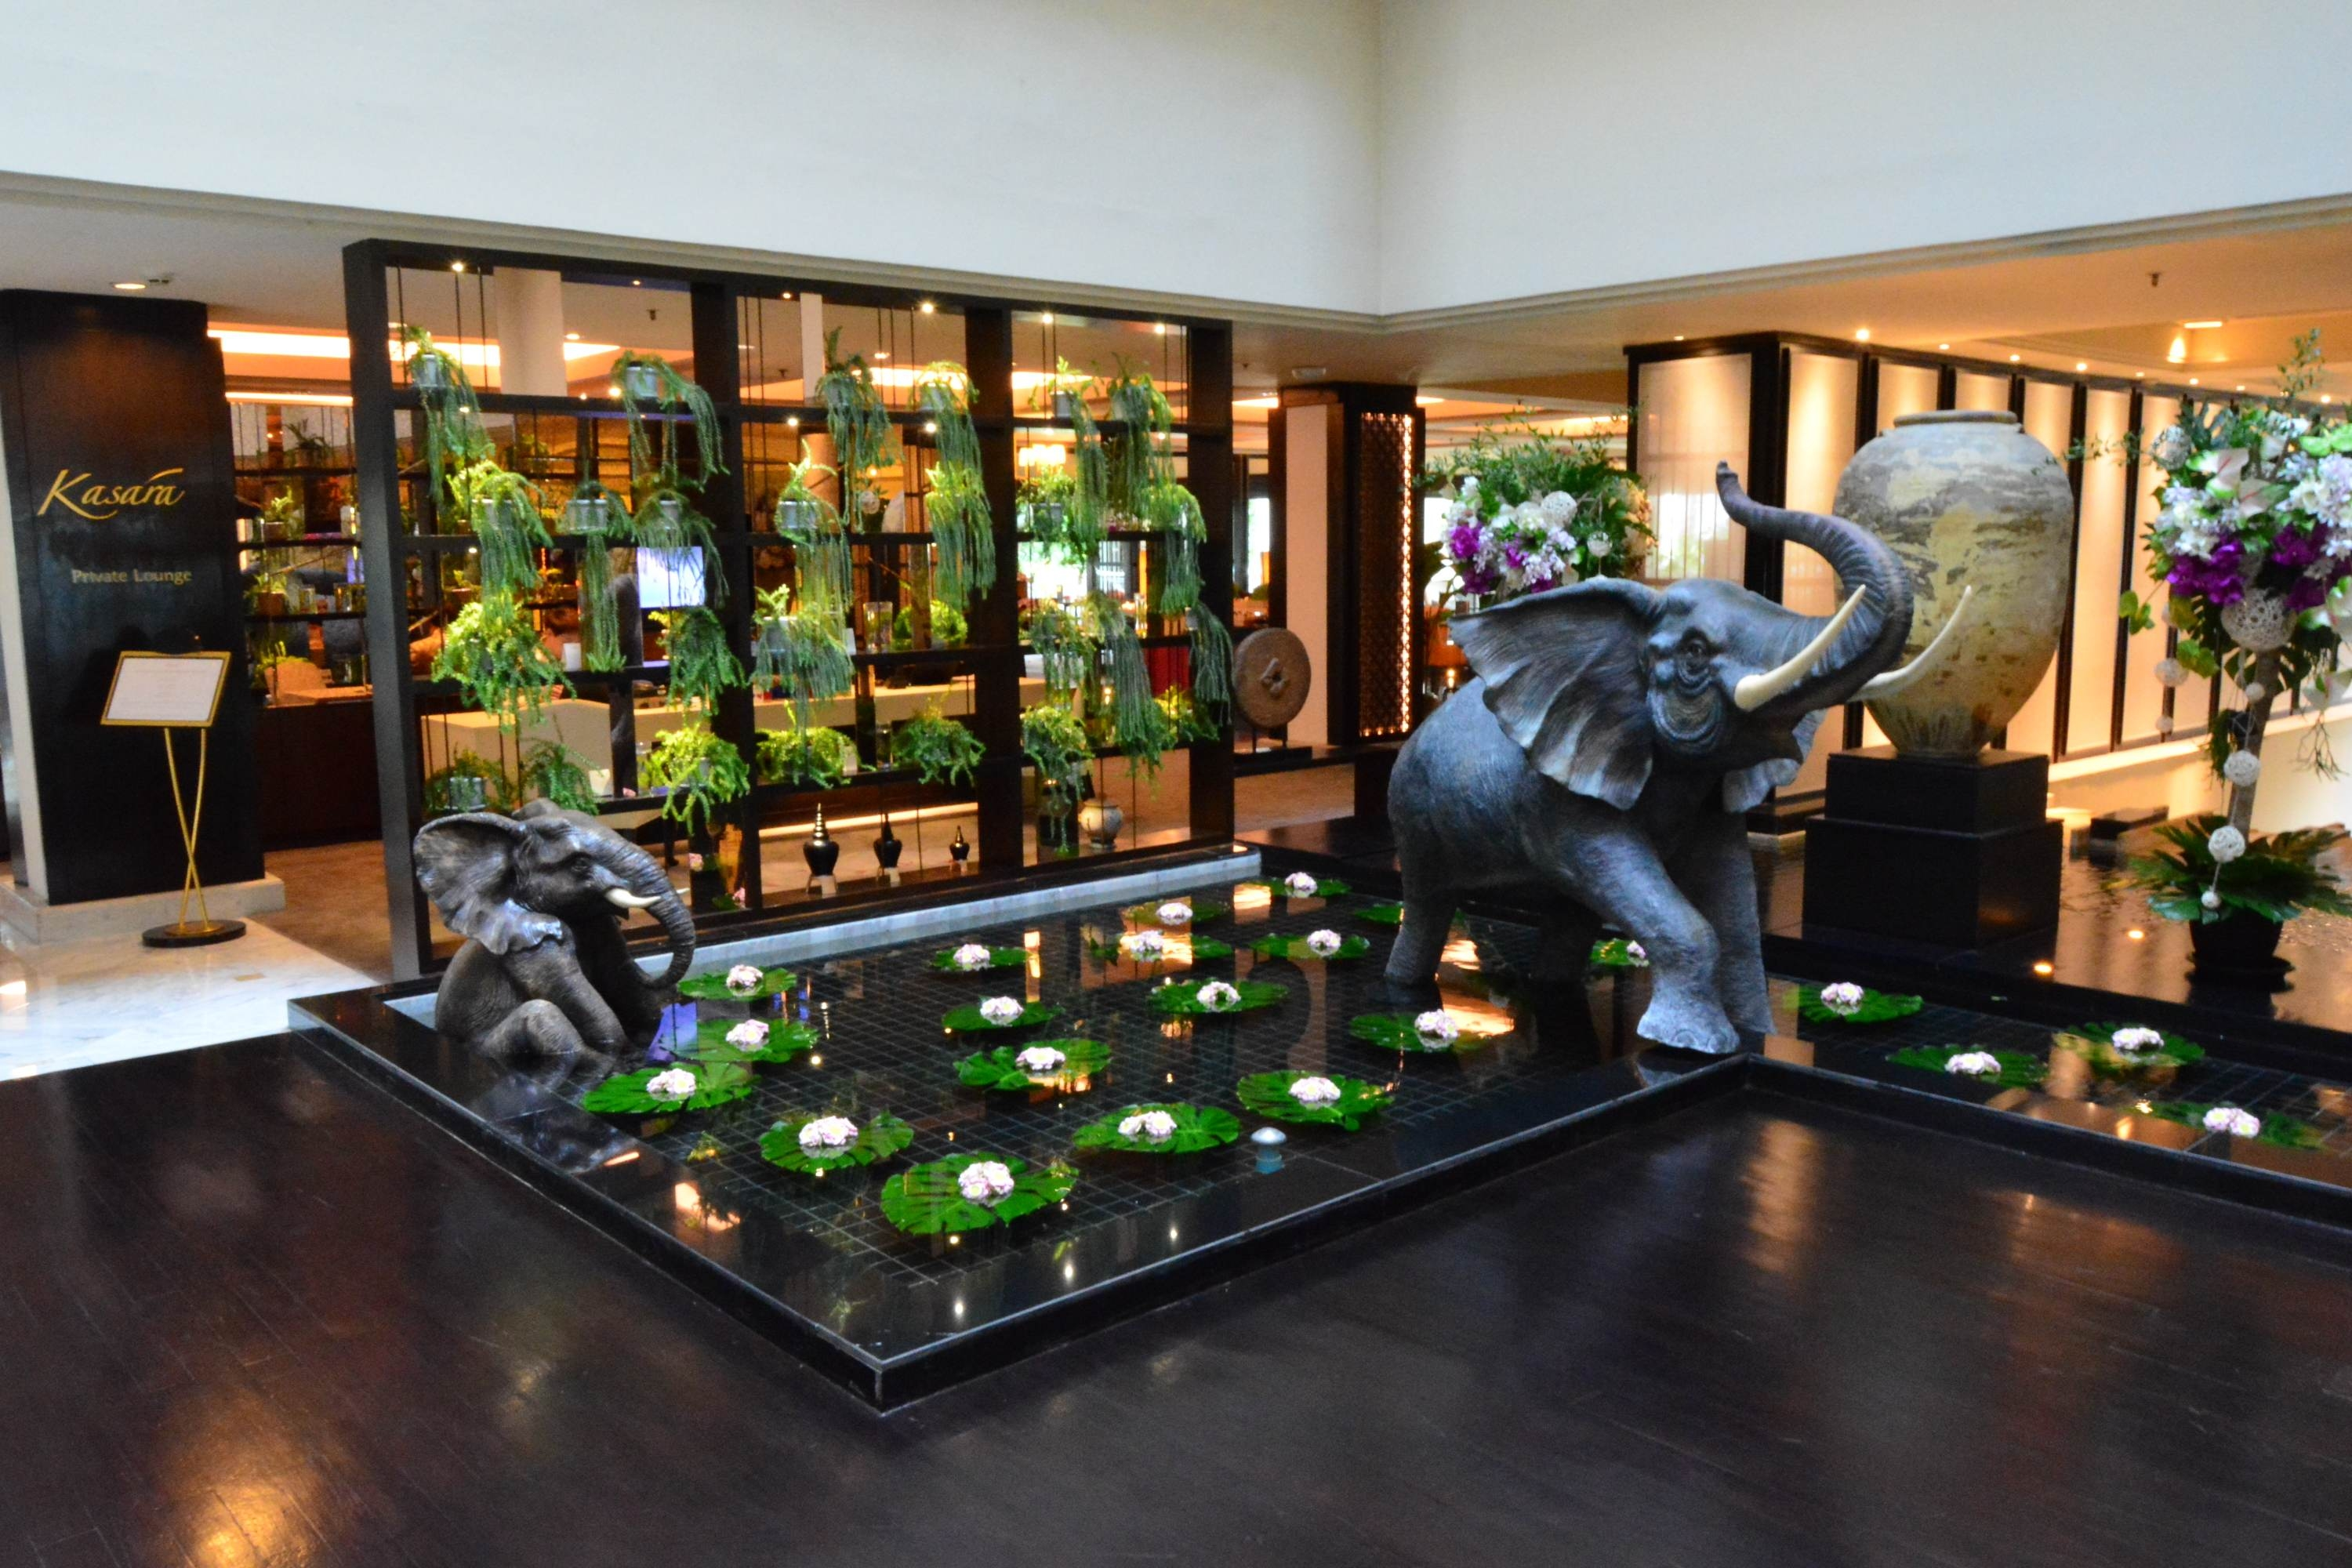 elephant-kasara-executive-lounge-anantara